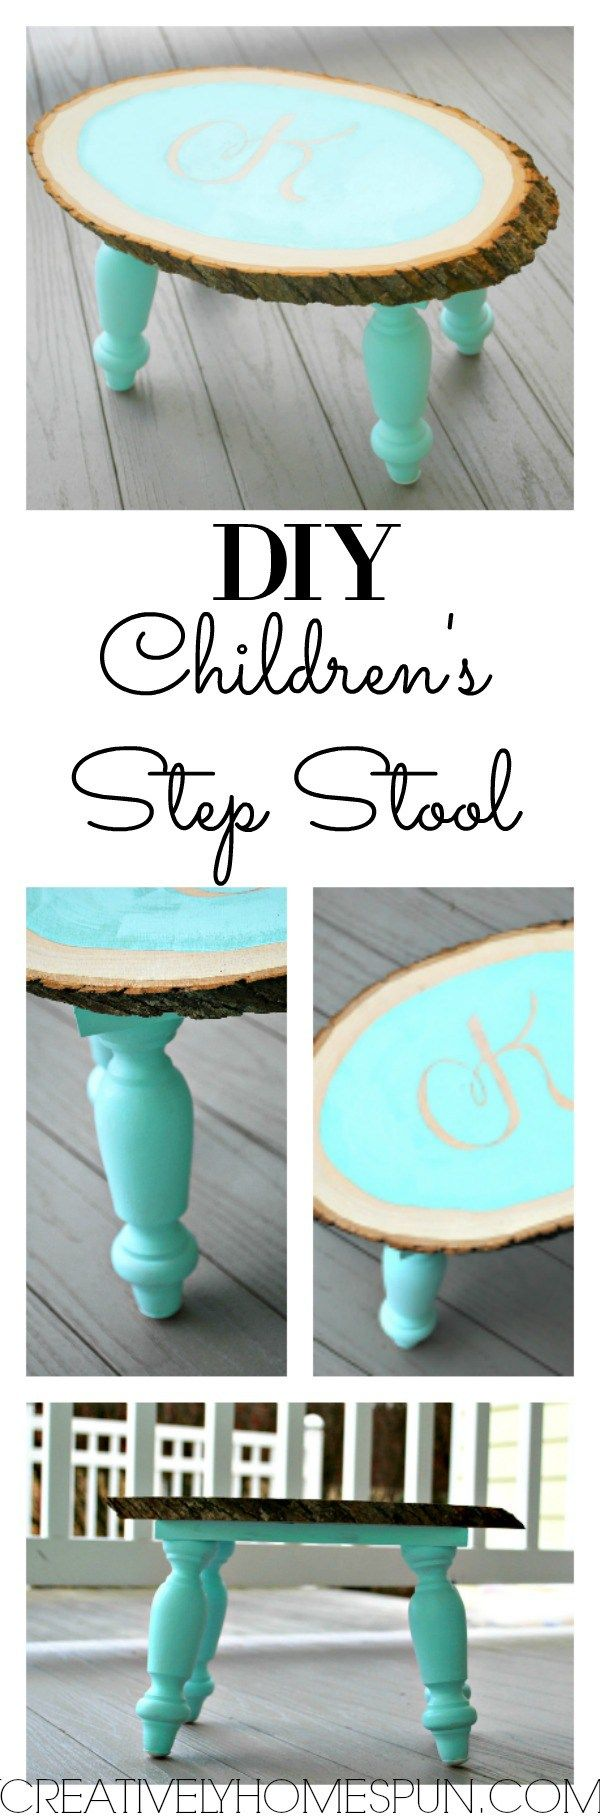 Diy make your own sand filled time out stool diy craft projects - Best 25 Step Stools Ideas On Pinterest Rustic Kids Step Stools Diy Stool And 2x4 Wood Projects